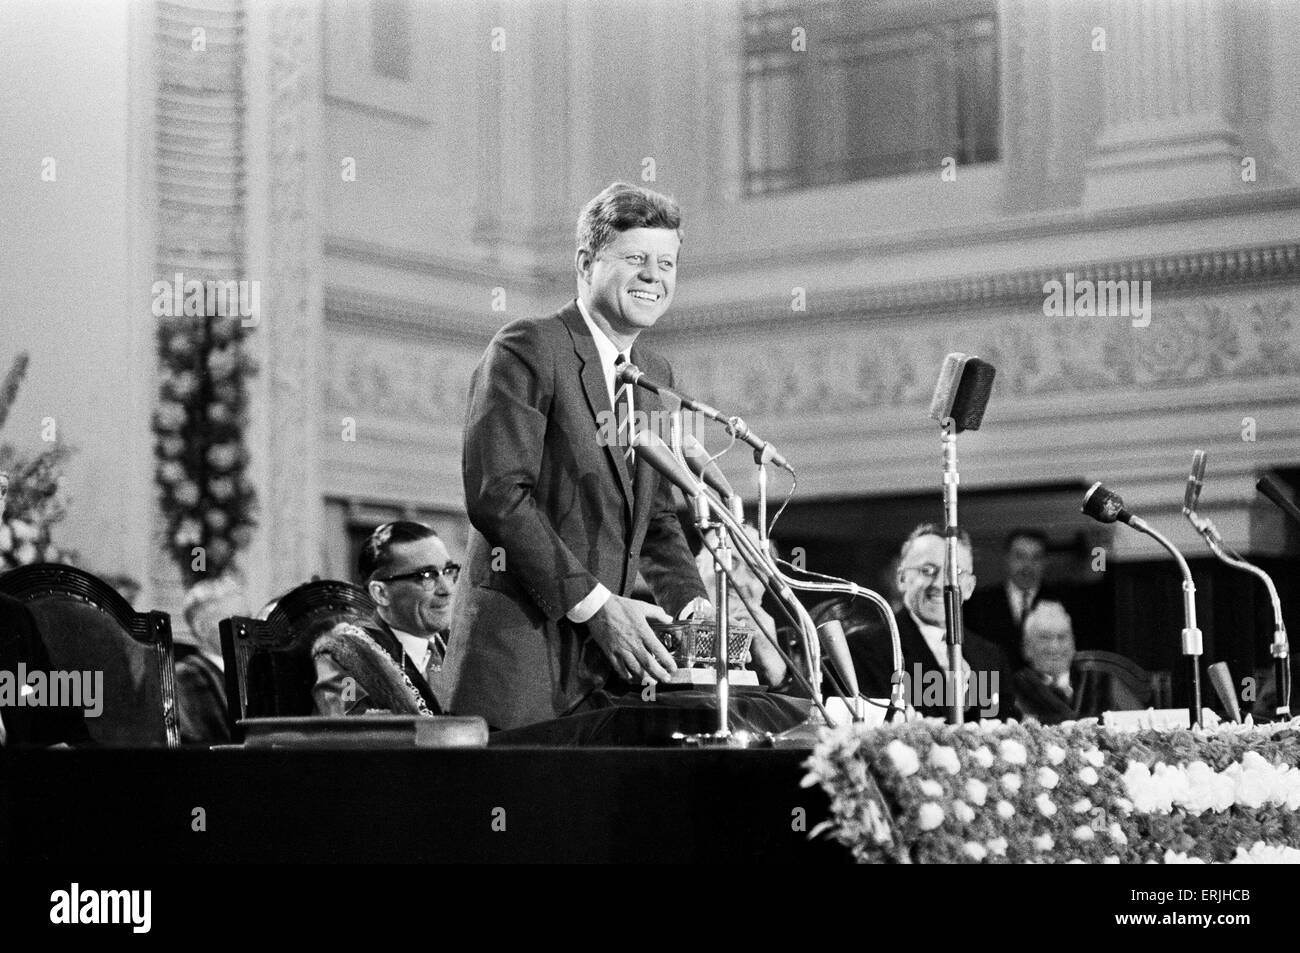 The visit of American President John F Kennedy to Ireland.  July 1963. - Stock Image